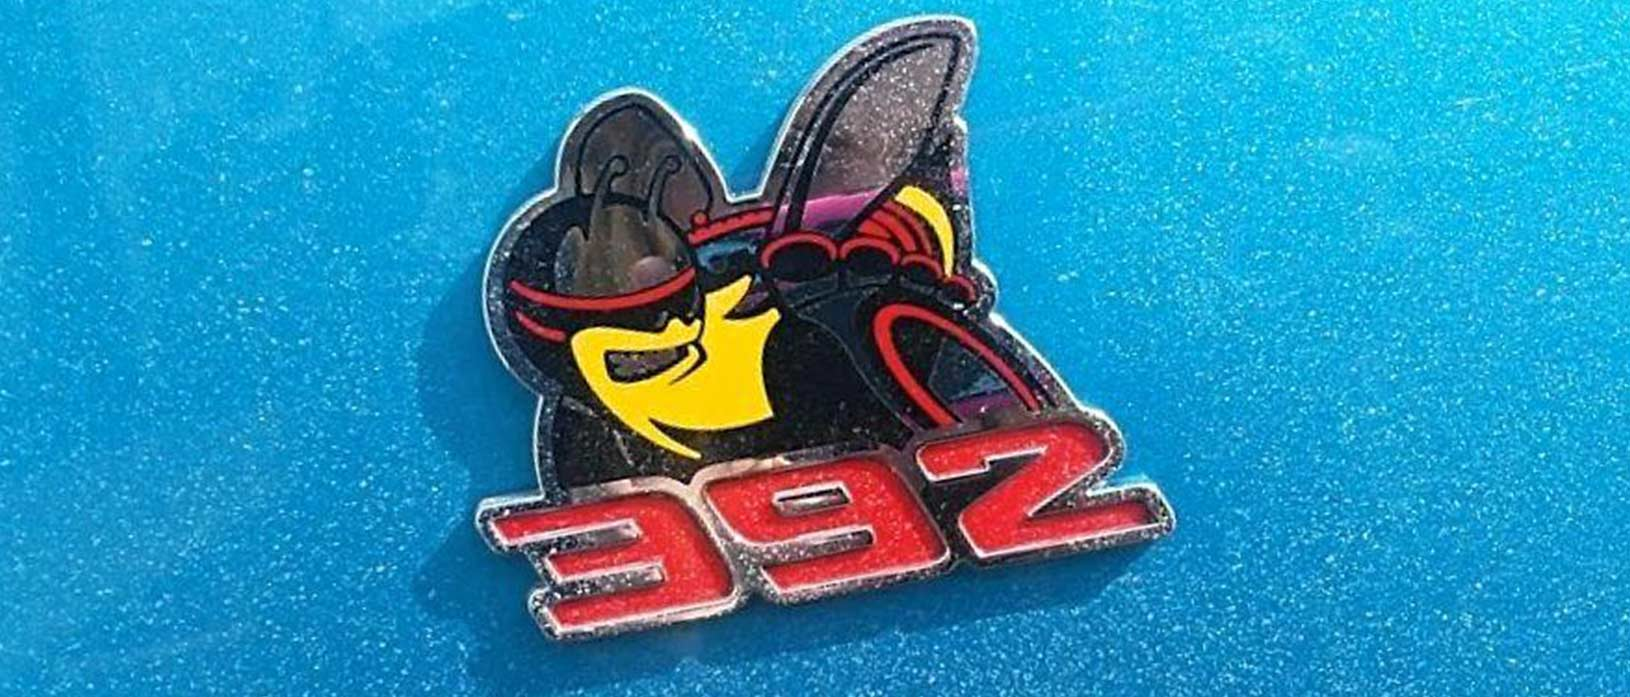 392 Scat Pack badge on the side of a B5 Blue Challenger